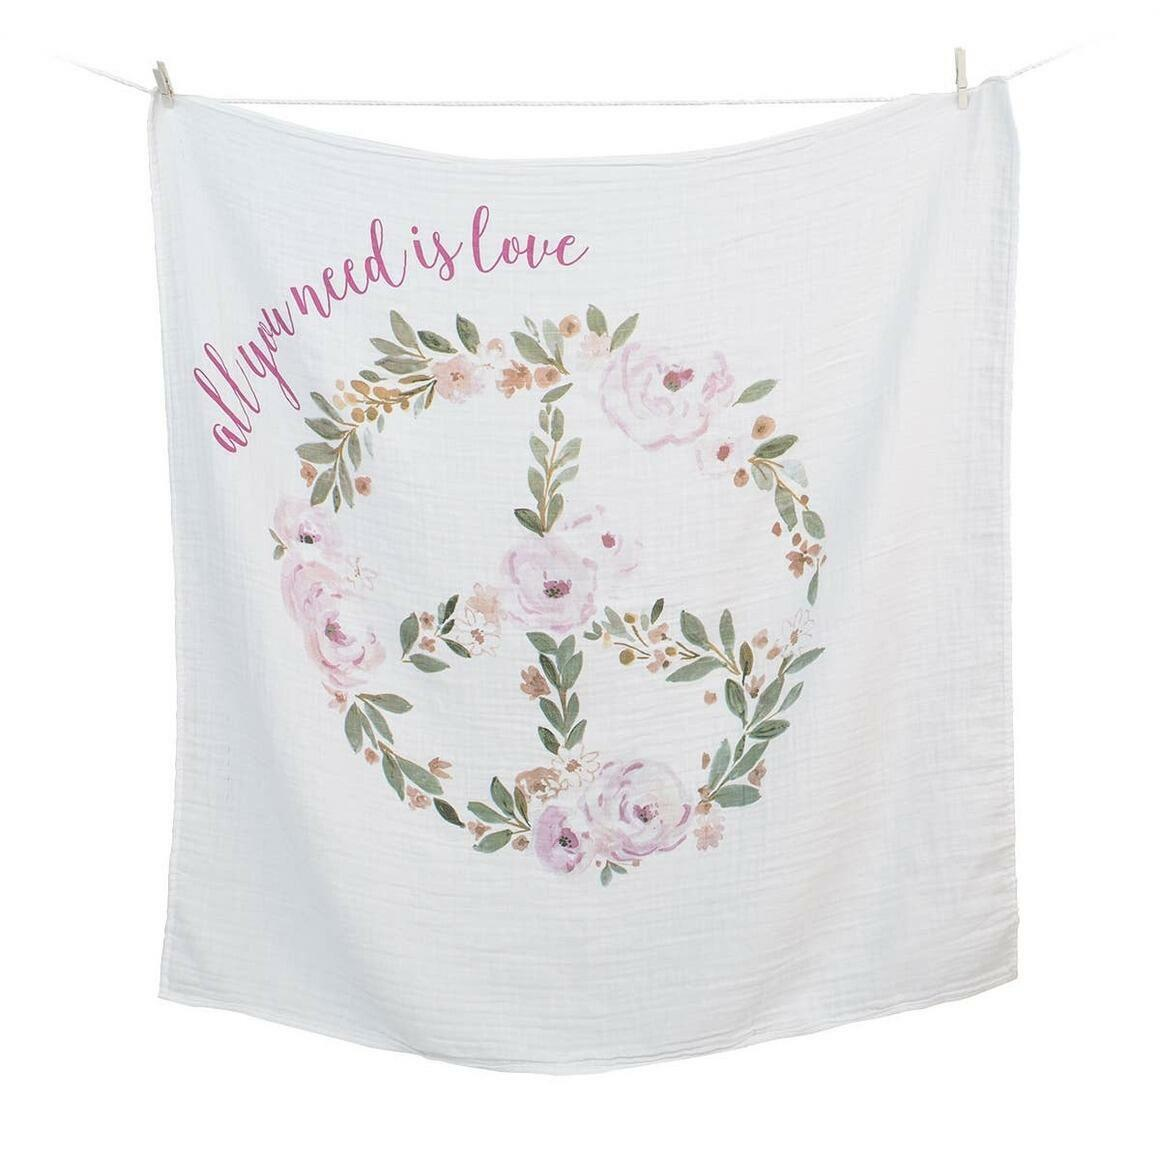 Single Cotton Swaddle & Cards - All You need Is Love   Trada Marketplace